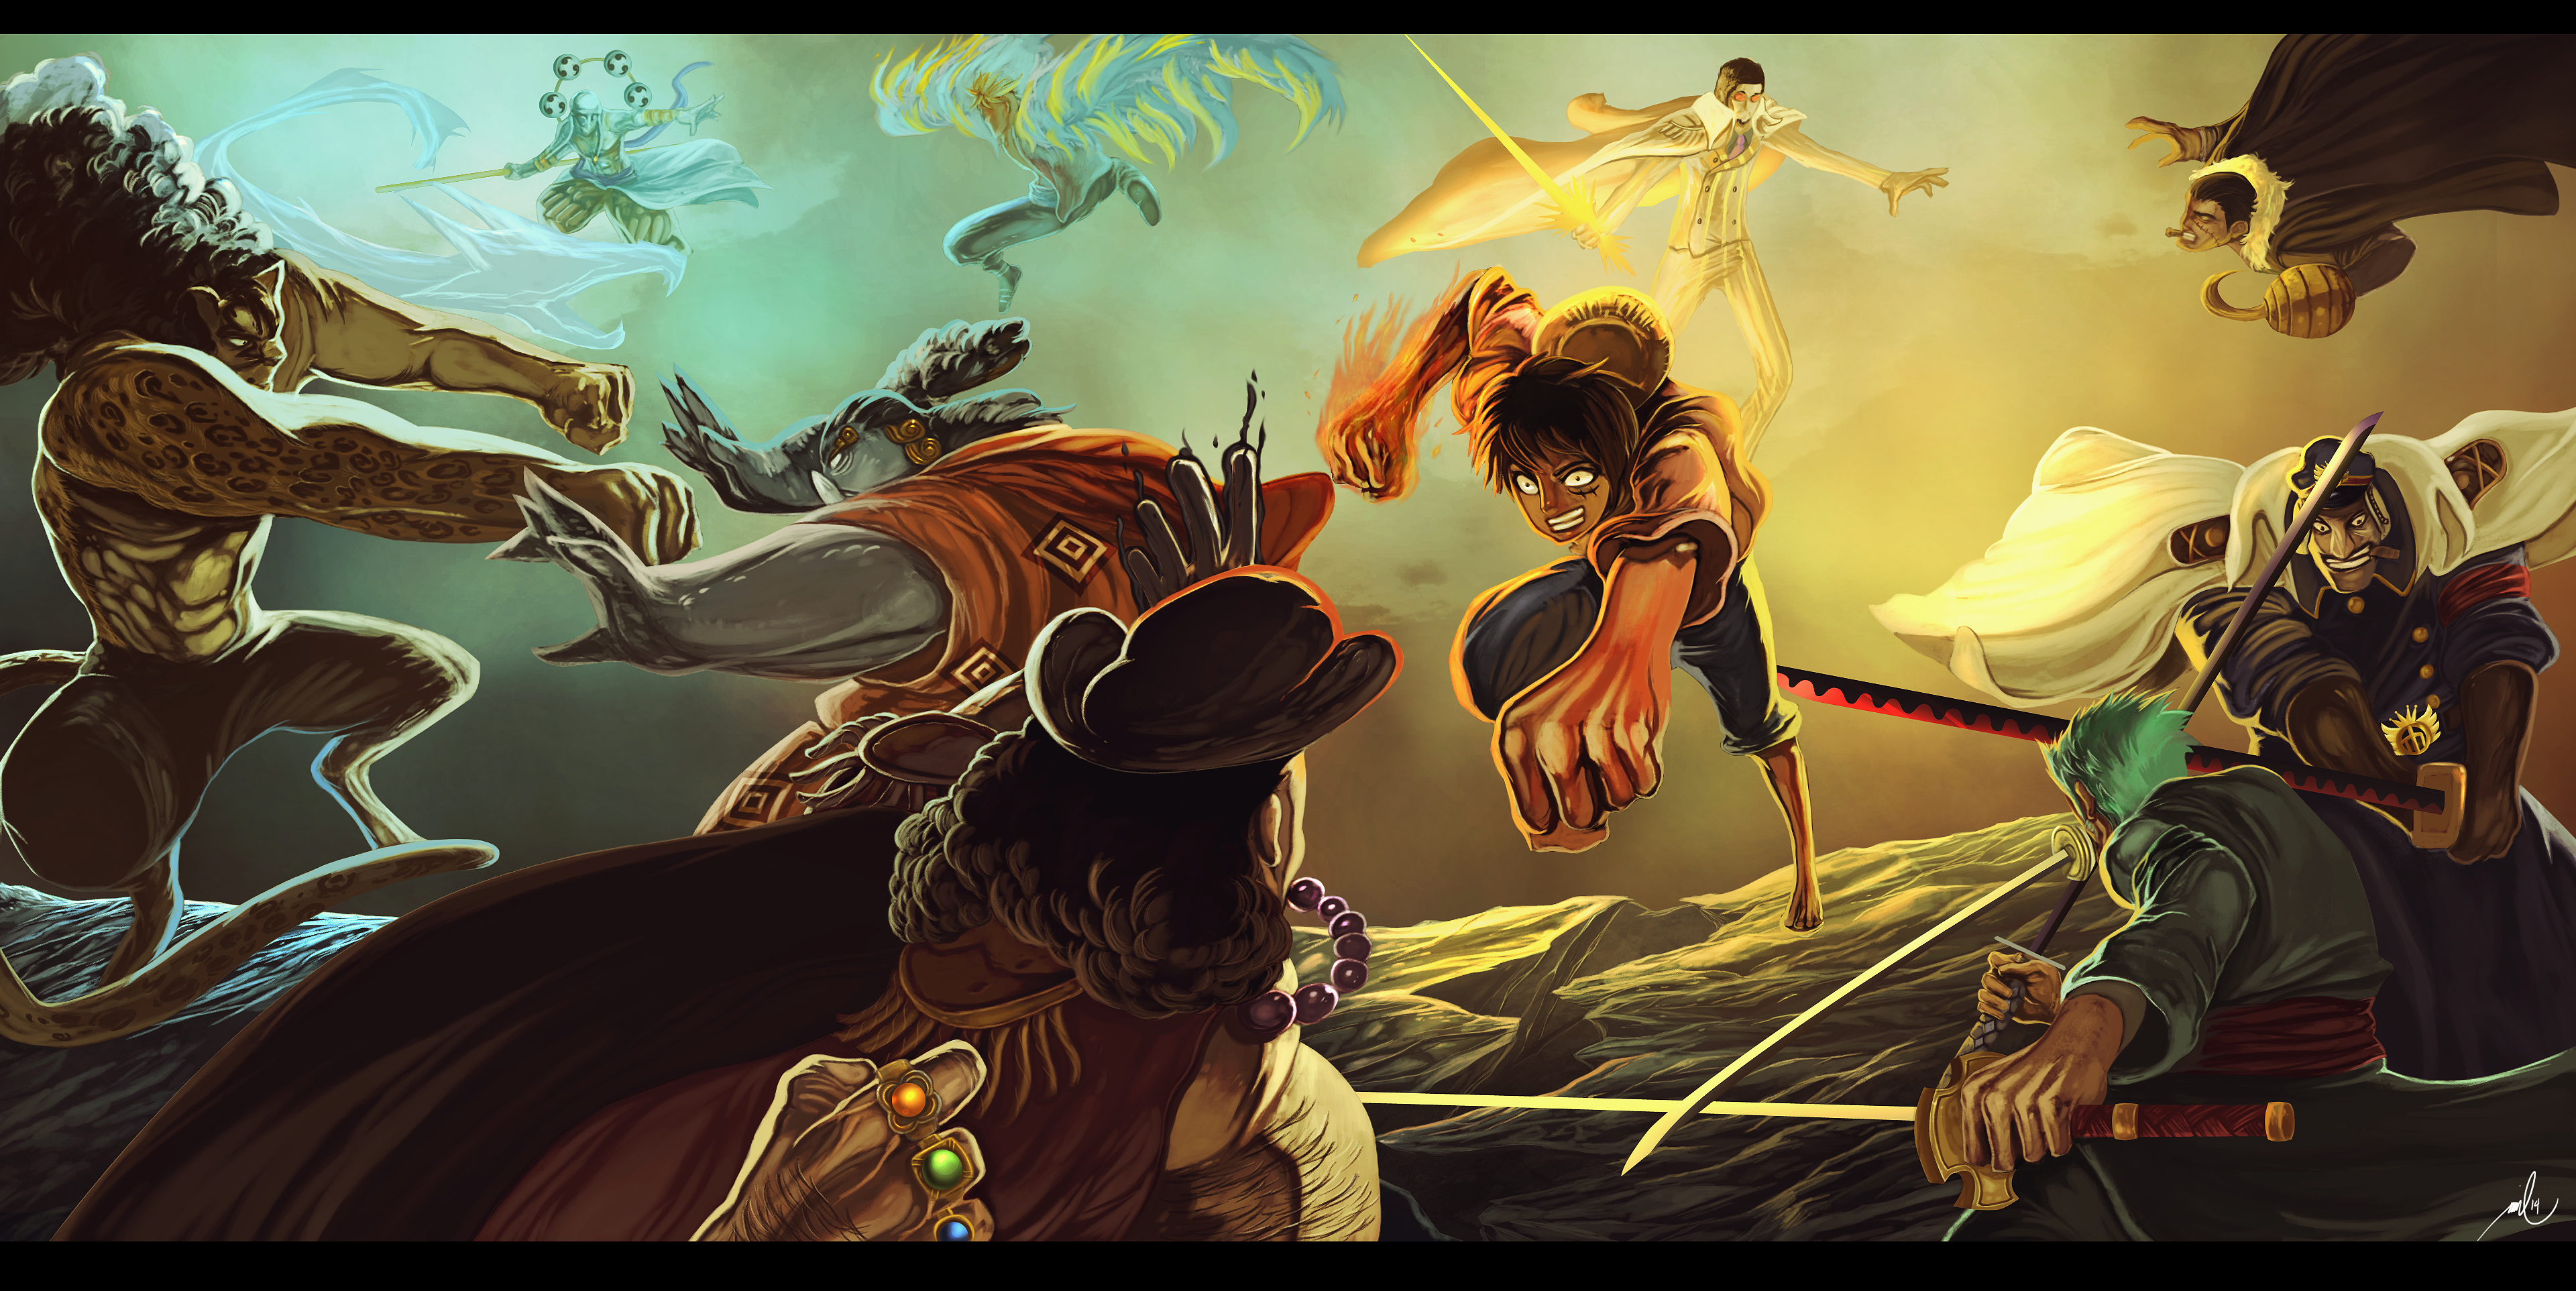 One piece hd wallpaper background image 3841x1925 id - One piece wallpaper ...